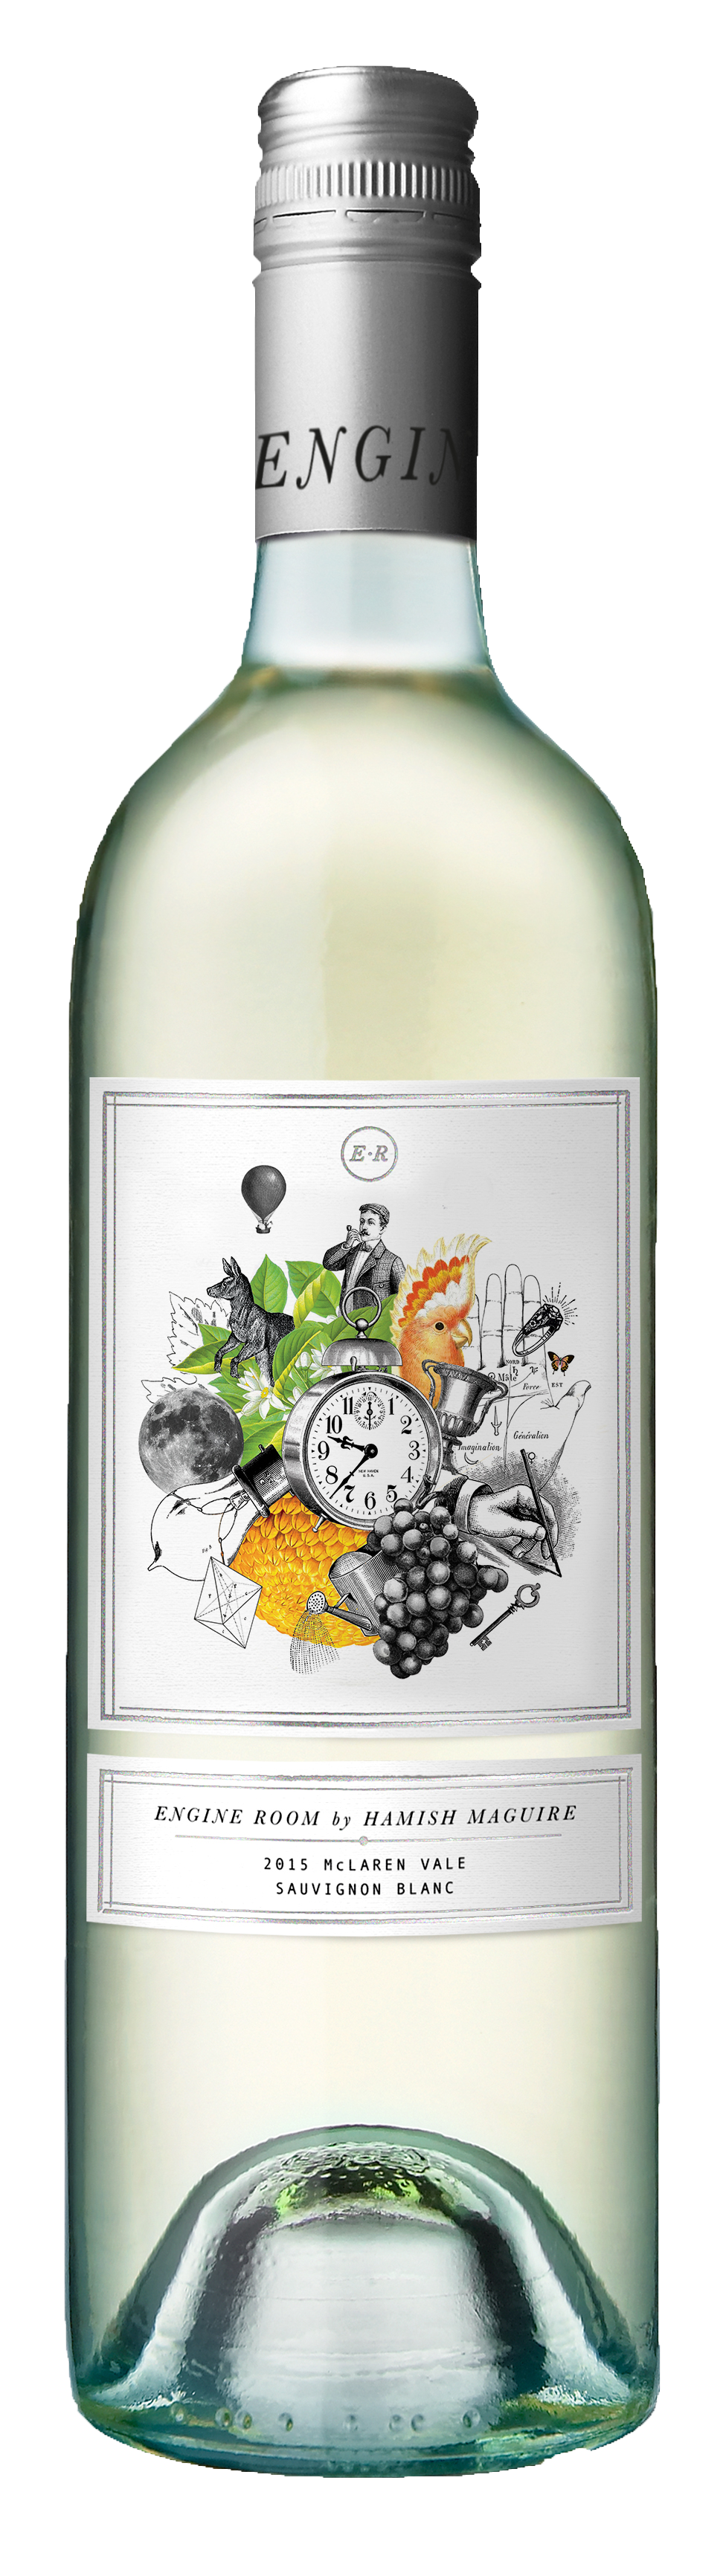 Engine Room SAUVIGNON BLANC 2019